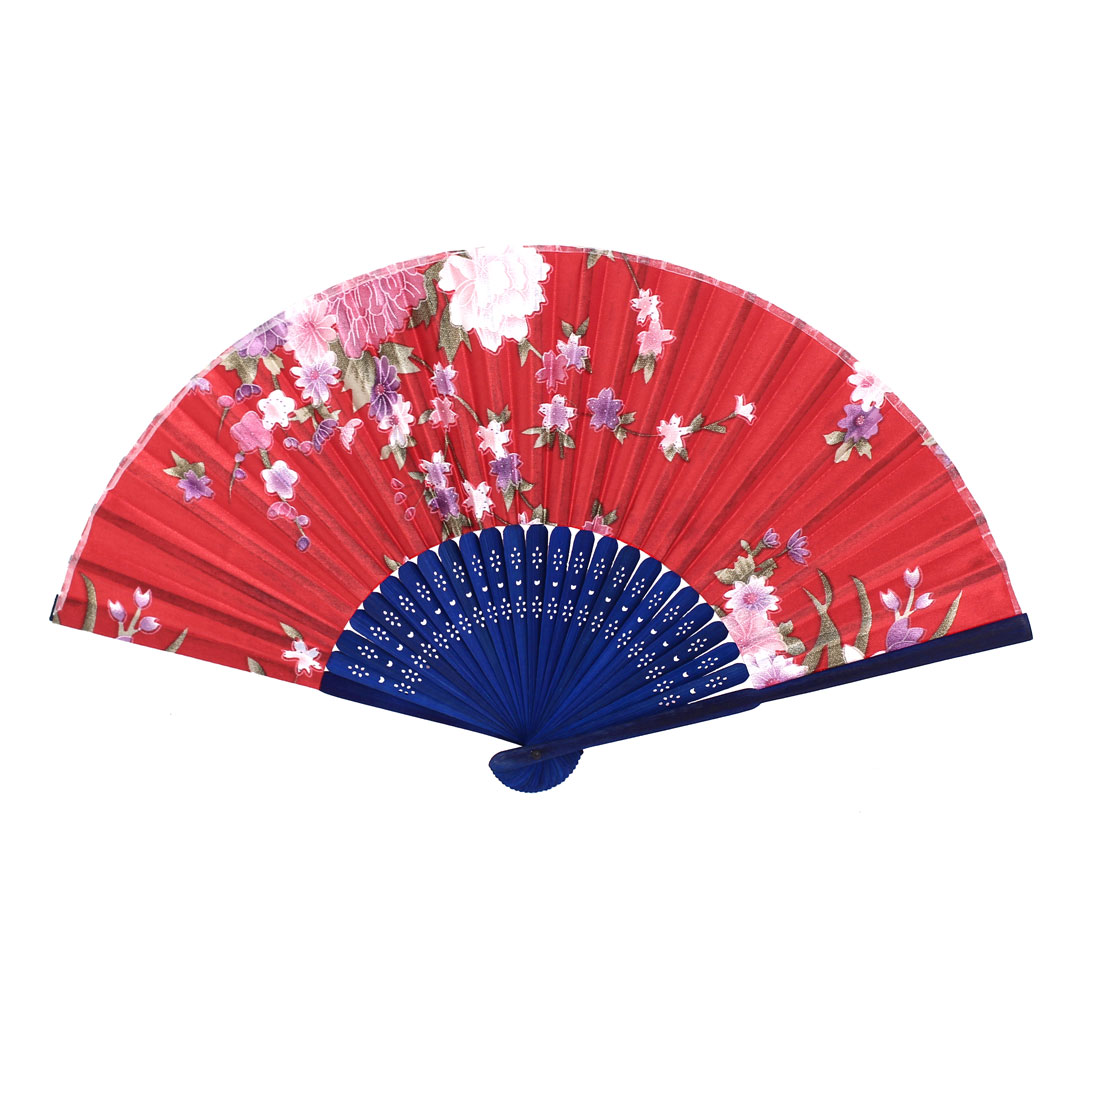 Women Bamboo Hollow Out Frame Wedding Party Gift Foldable Hand Fan Red